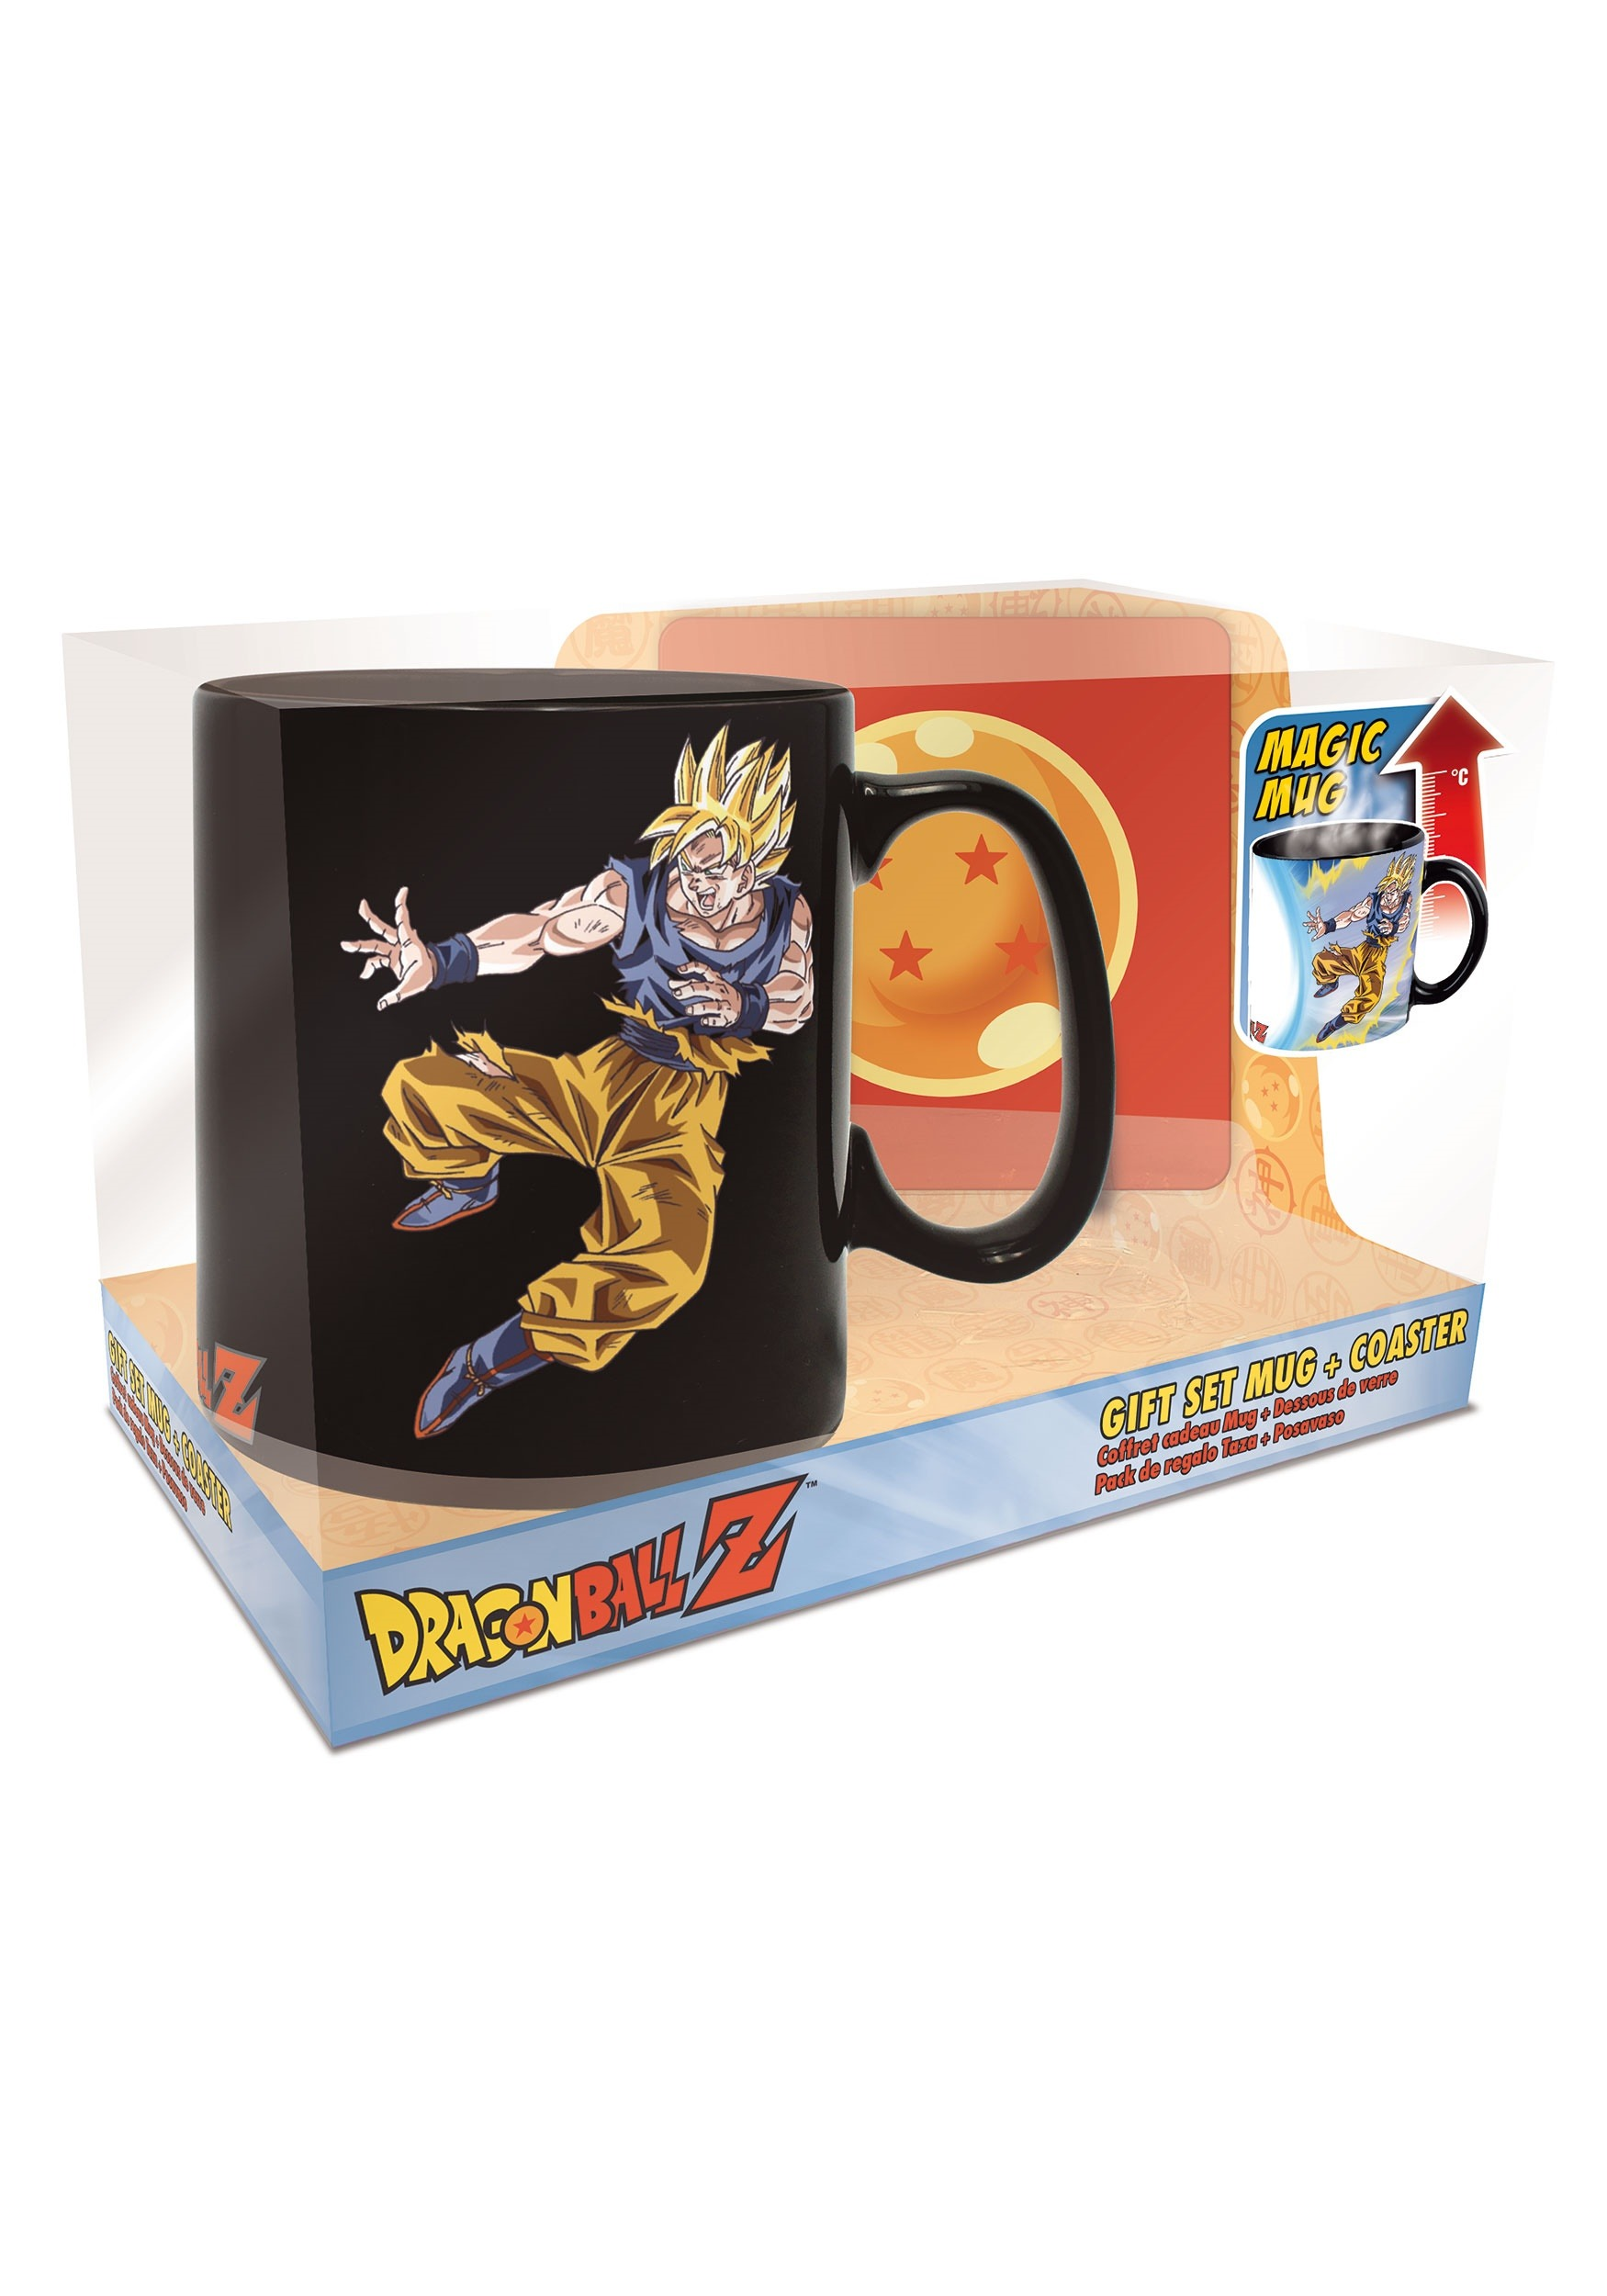 Heat Change Mug Coaster Set: Dragon Ball Z Goku Buu